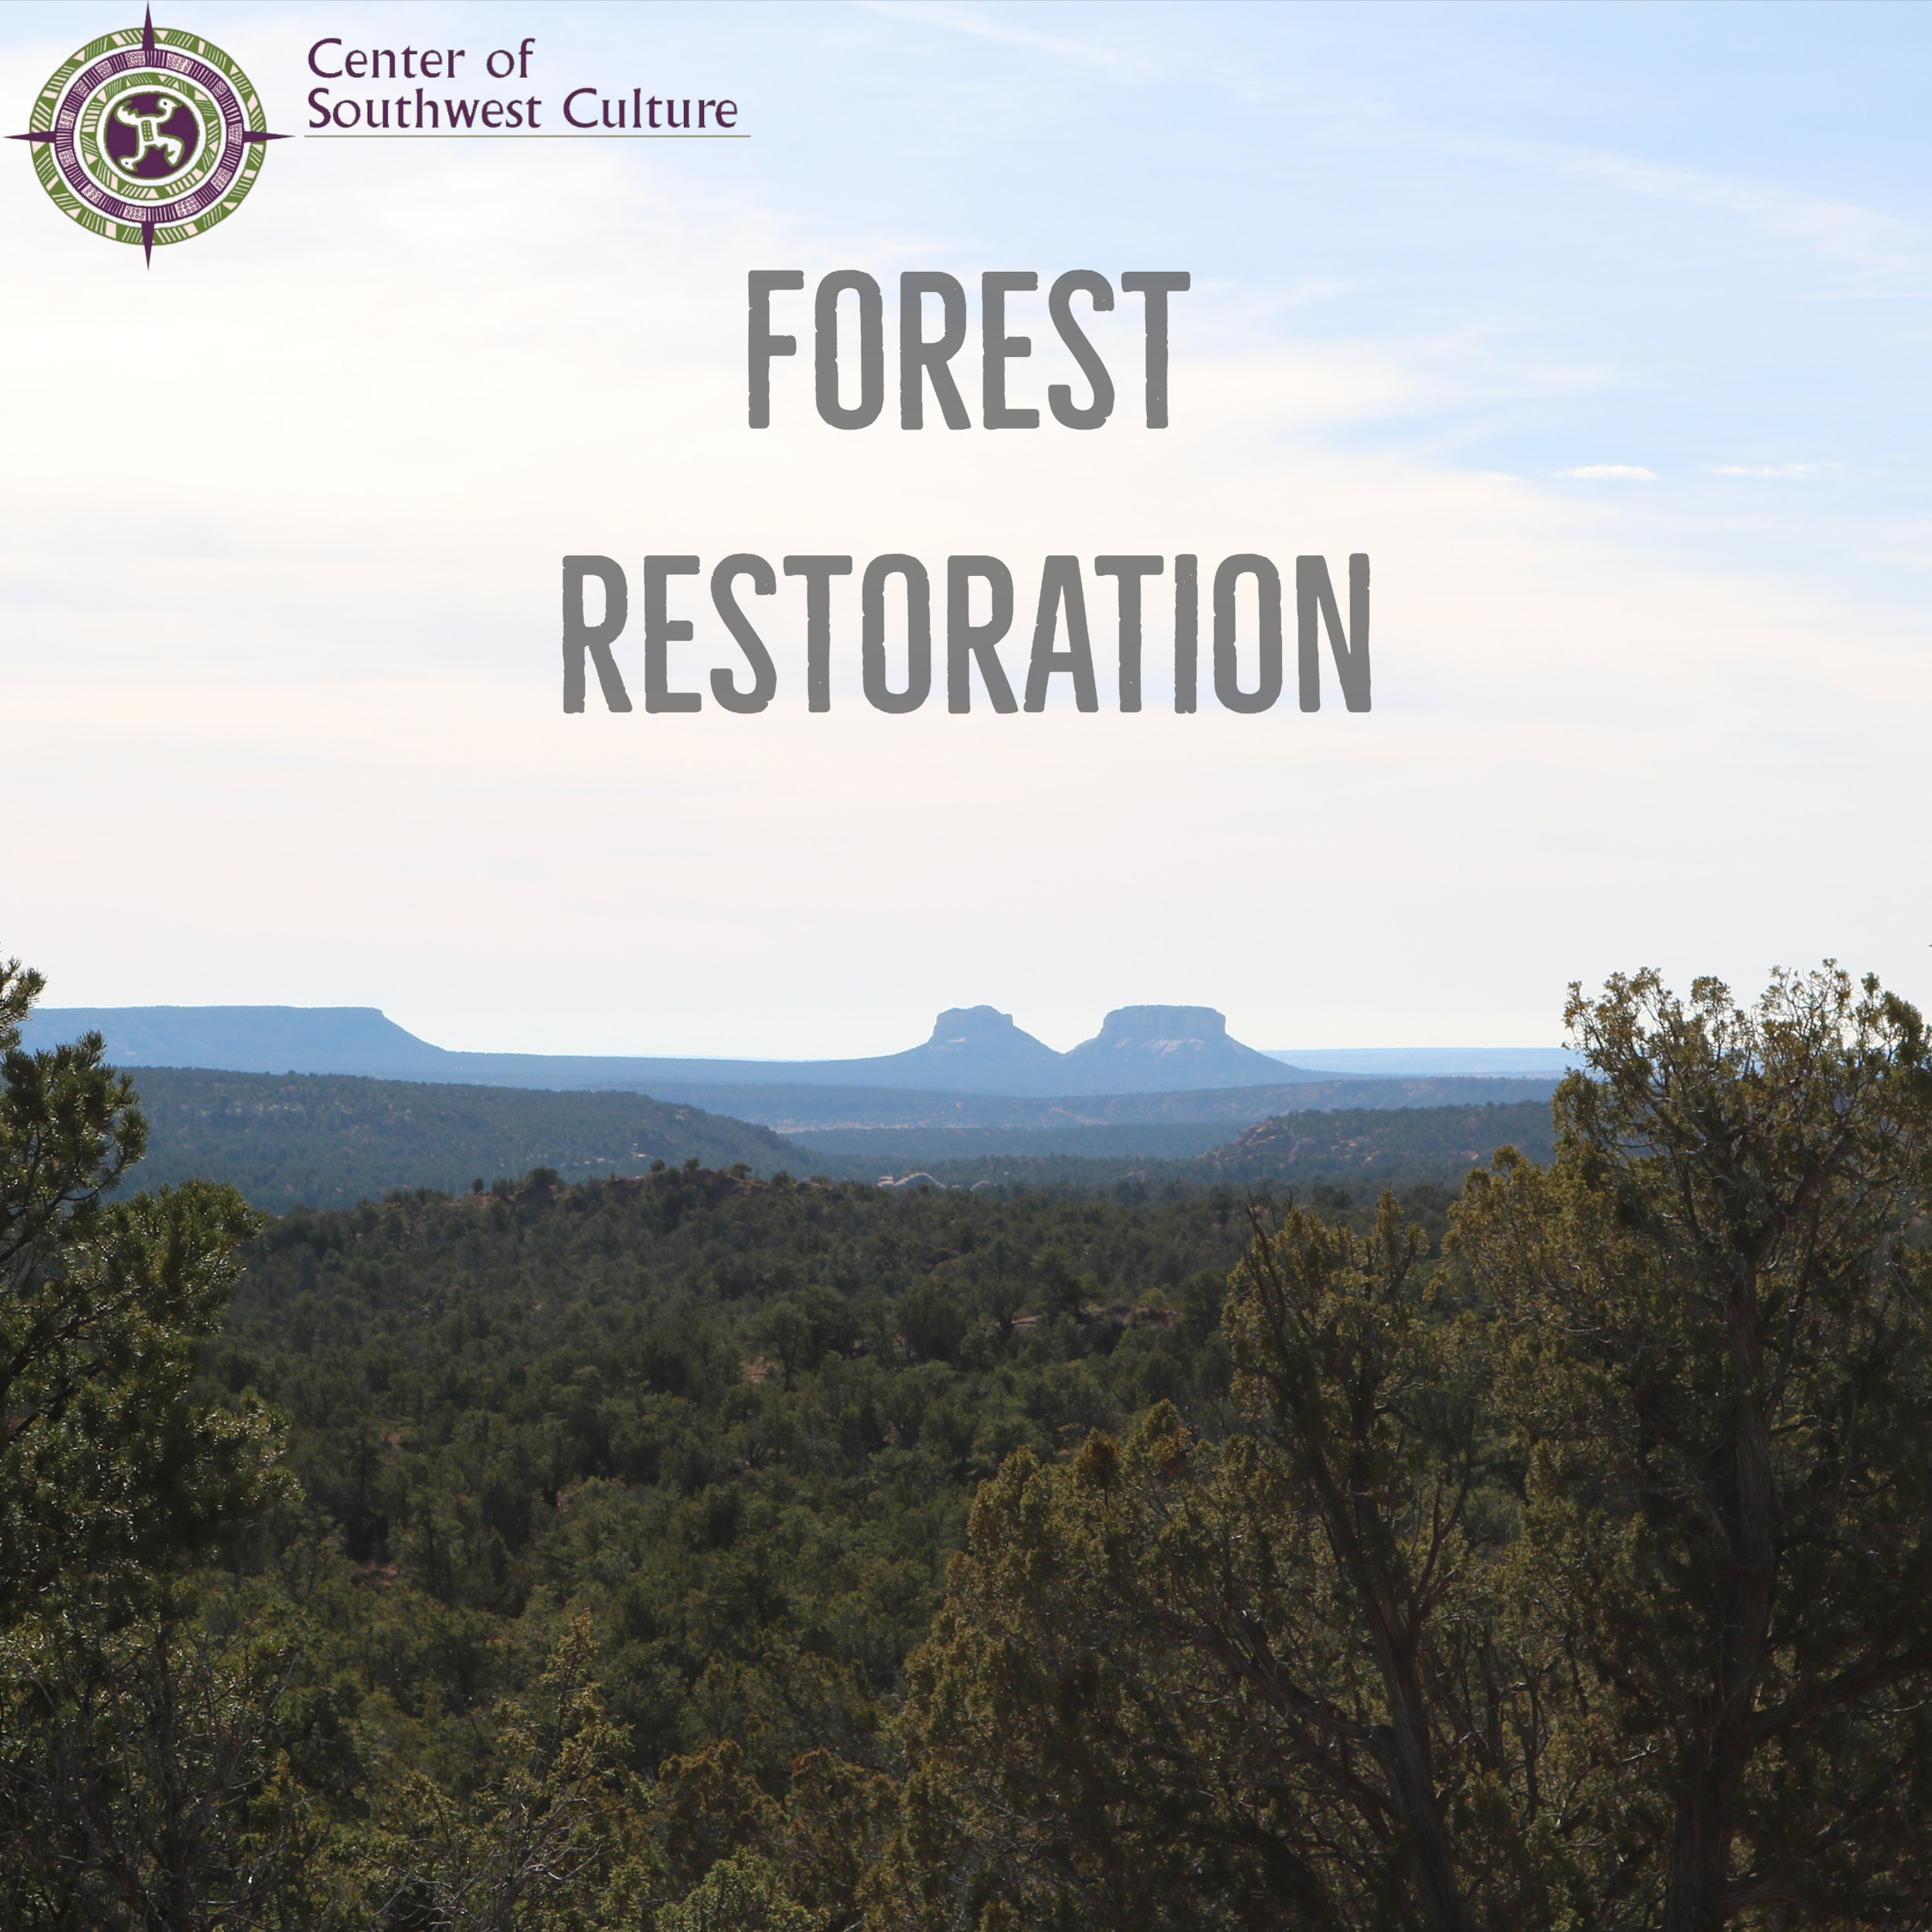 Emergency Forest Restoration Program (EFRP) - The Emergency Forest Restoration Program (EFRP) provides payments to eligible owners of nonindustrial private forest land in order to carry out emergency measures to restore land damage by a natural disaster.PDF information can be found here